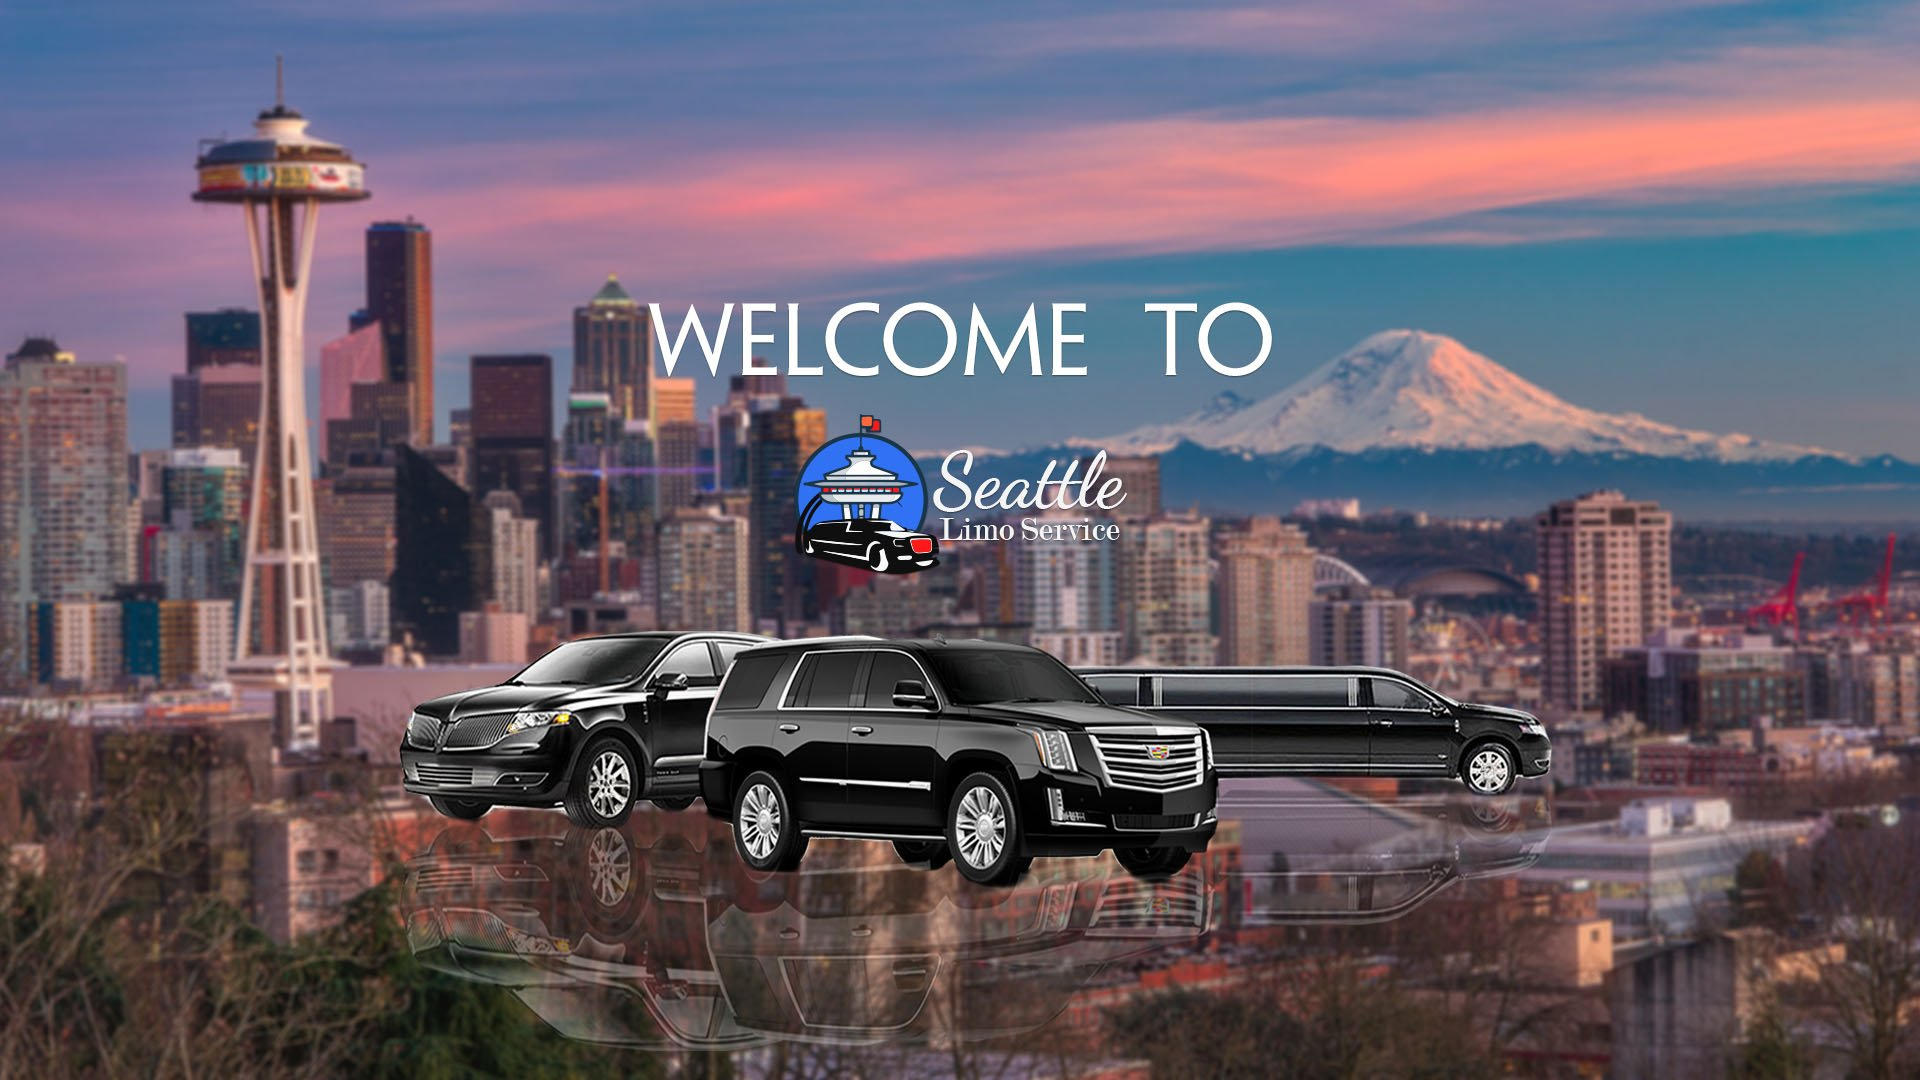 Seattle Limo Service  Best Transportation Service In. British Airline Credit Card Bill Munday Ford. Cheap Dedicated Server Unlimited Bandwidth. Square Brochure Printing Water Treatment Cost. Nearest Auto Glass Repair Consumer Staple Etf. Outlook Hosted Exchange Auto Showcase Bel Air. University School Fort Lauderdale. Carpet Cleaning Renton Wa Sjsu Online Courses. Bf Goodrich 10 Ply Tires Godaddy Vps Hosting